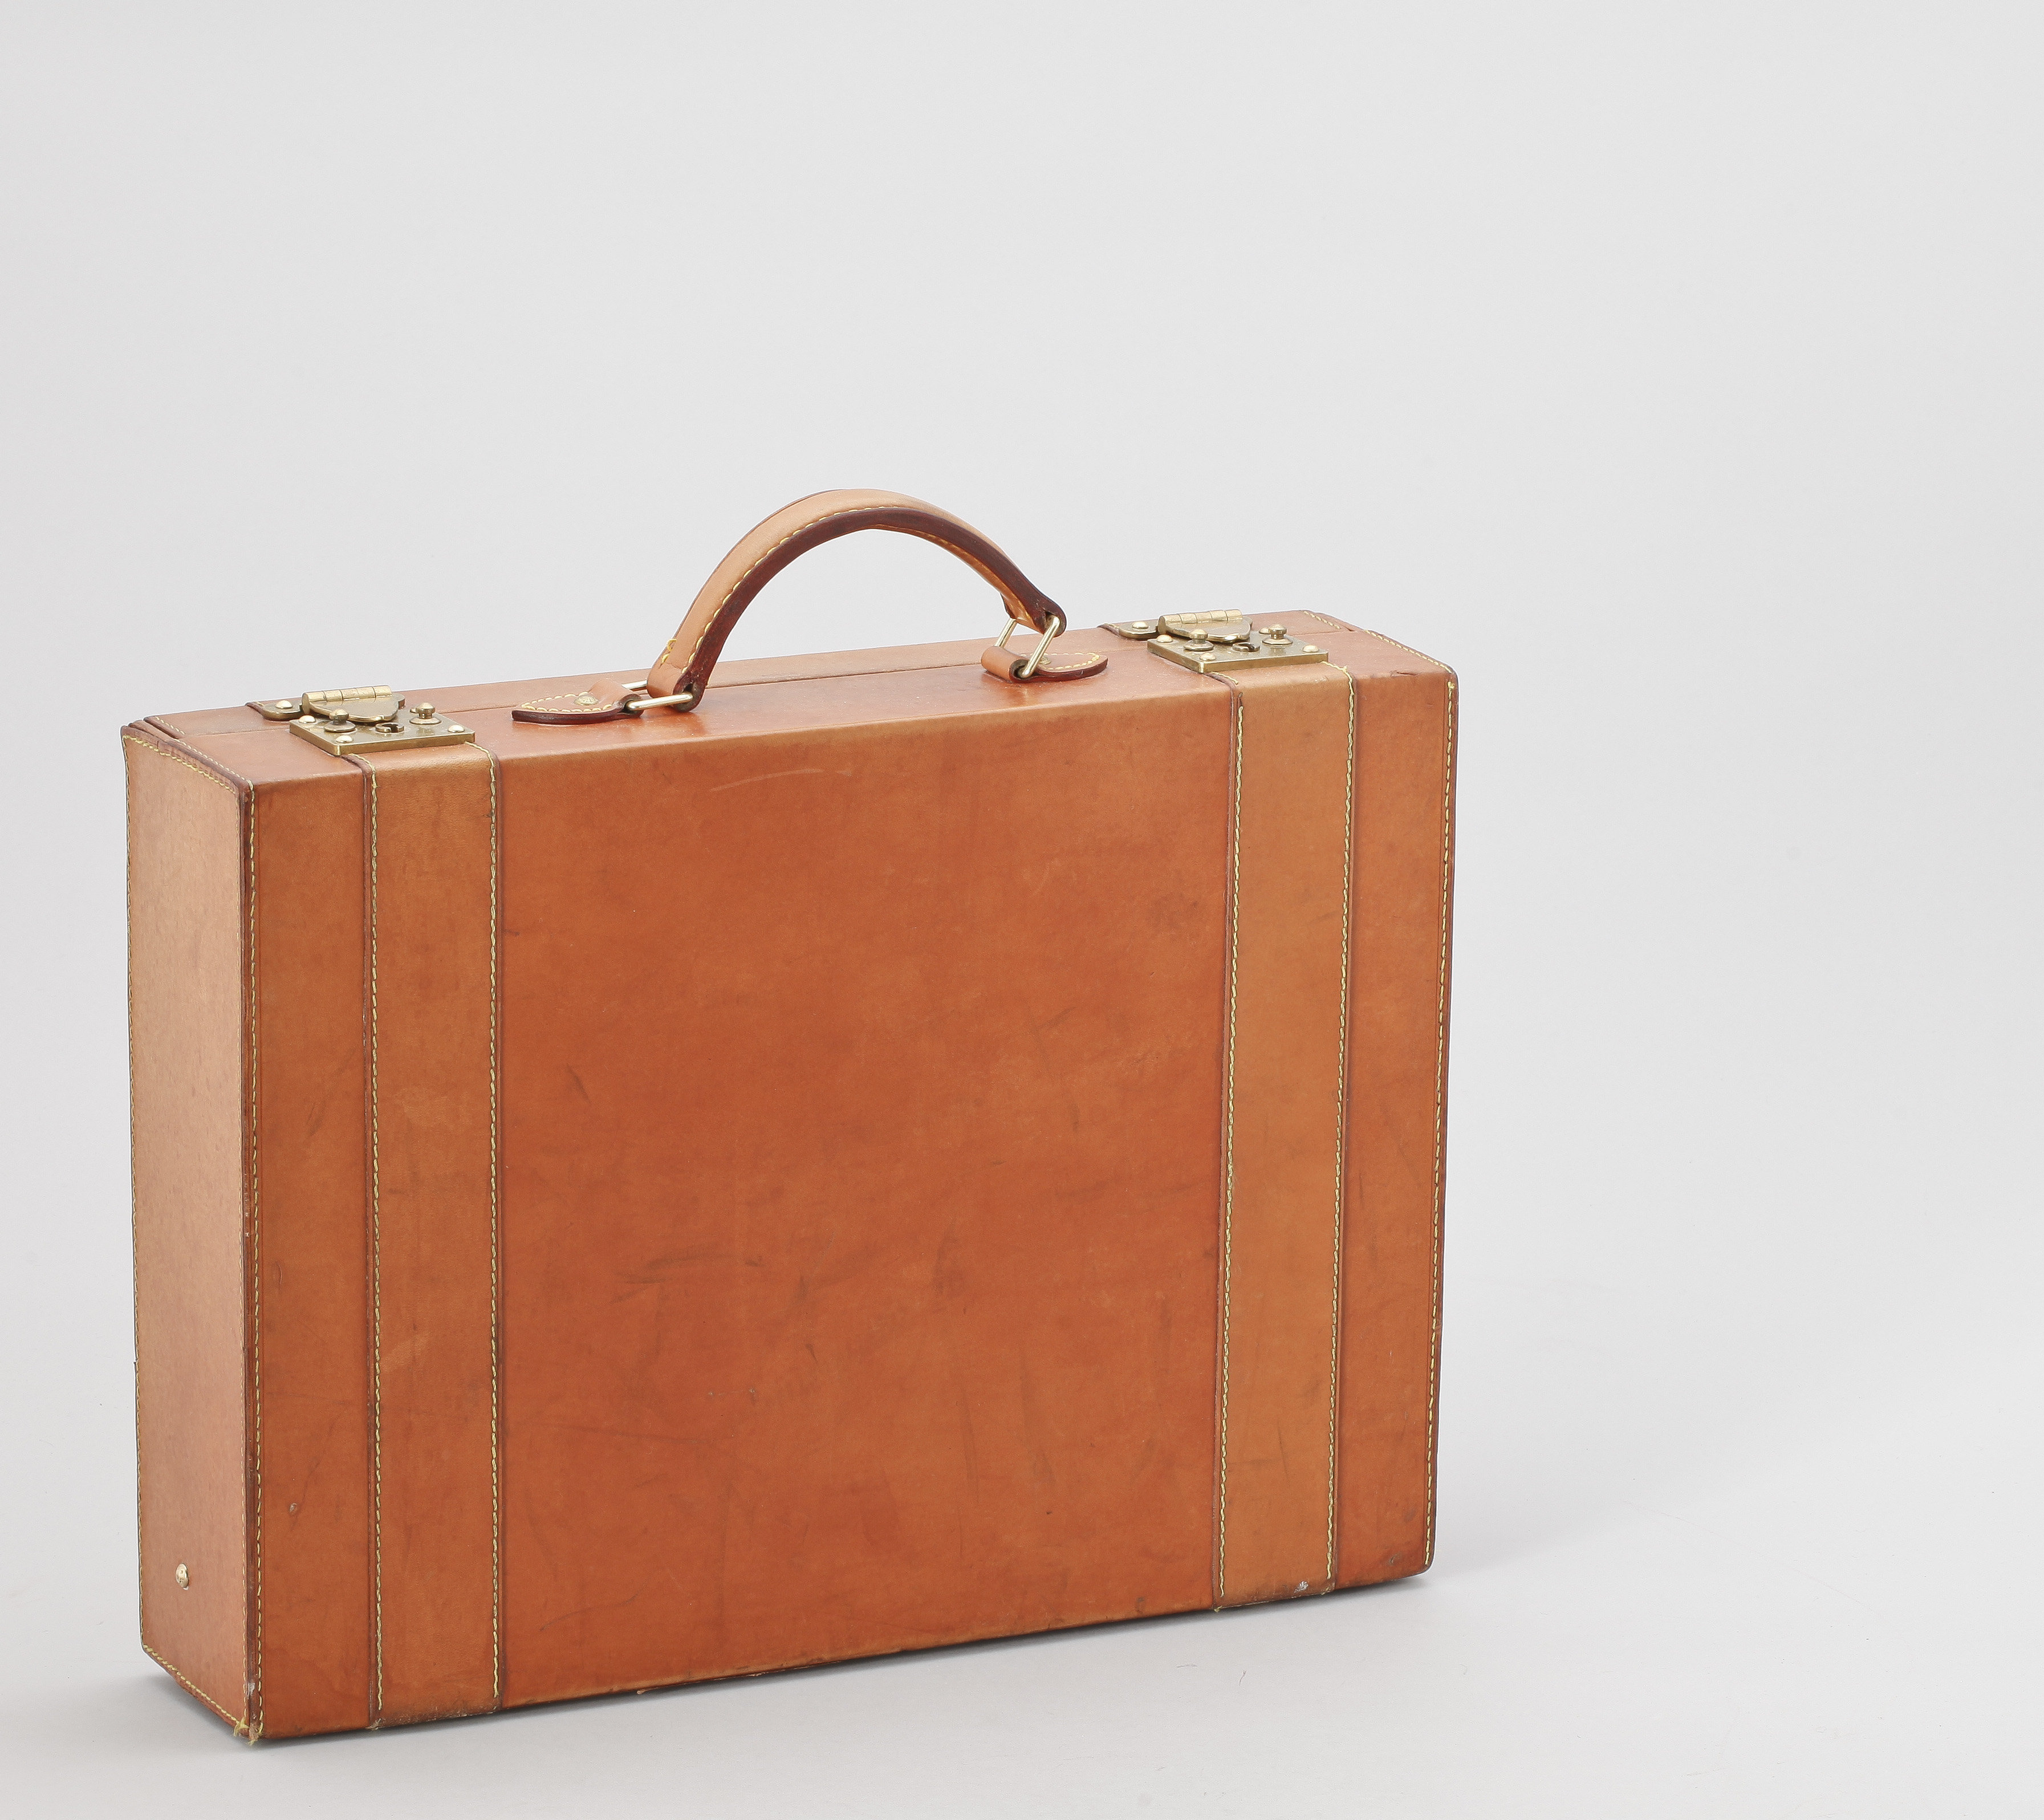 267525f7c97 Louis vuitton valuations (browse auction results) - Mearto.com